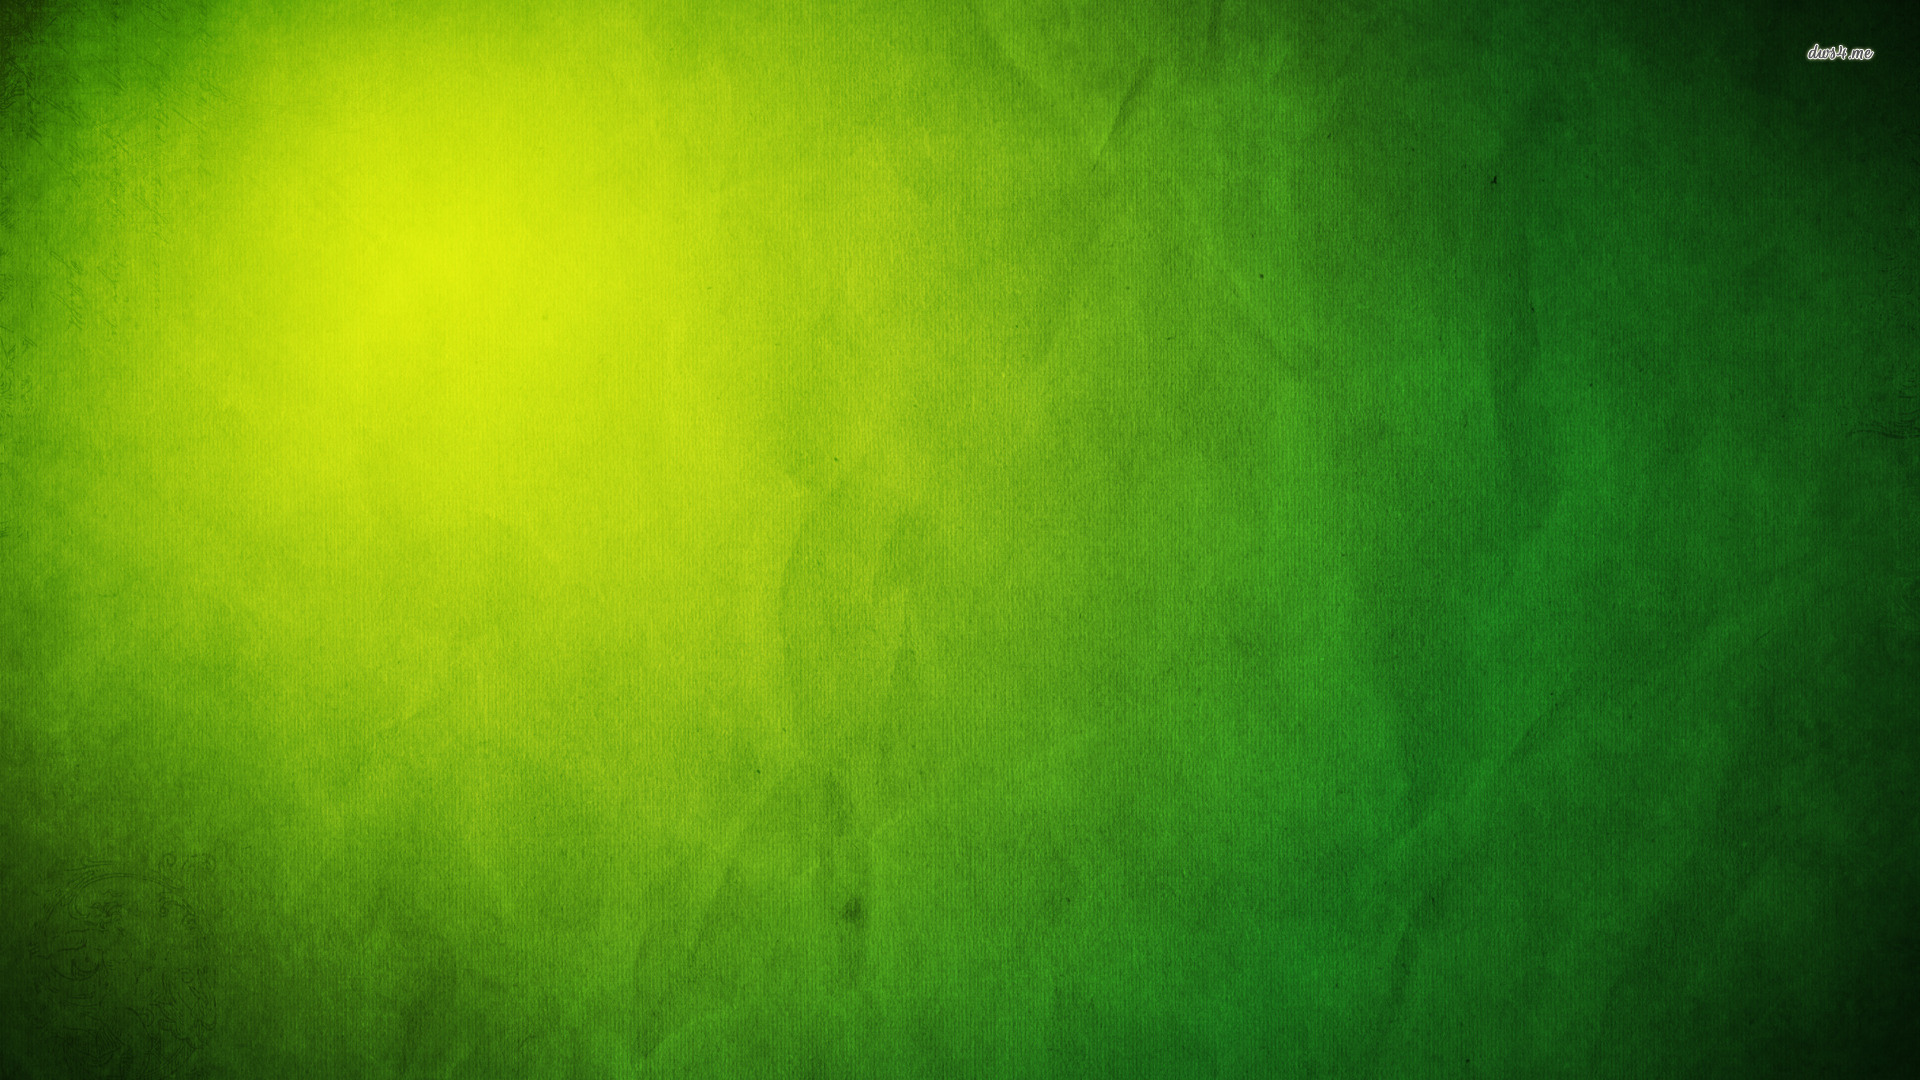 Green Wallpaper 346 Wallpapers HD